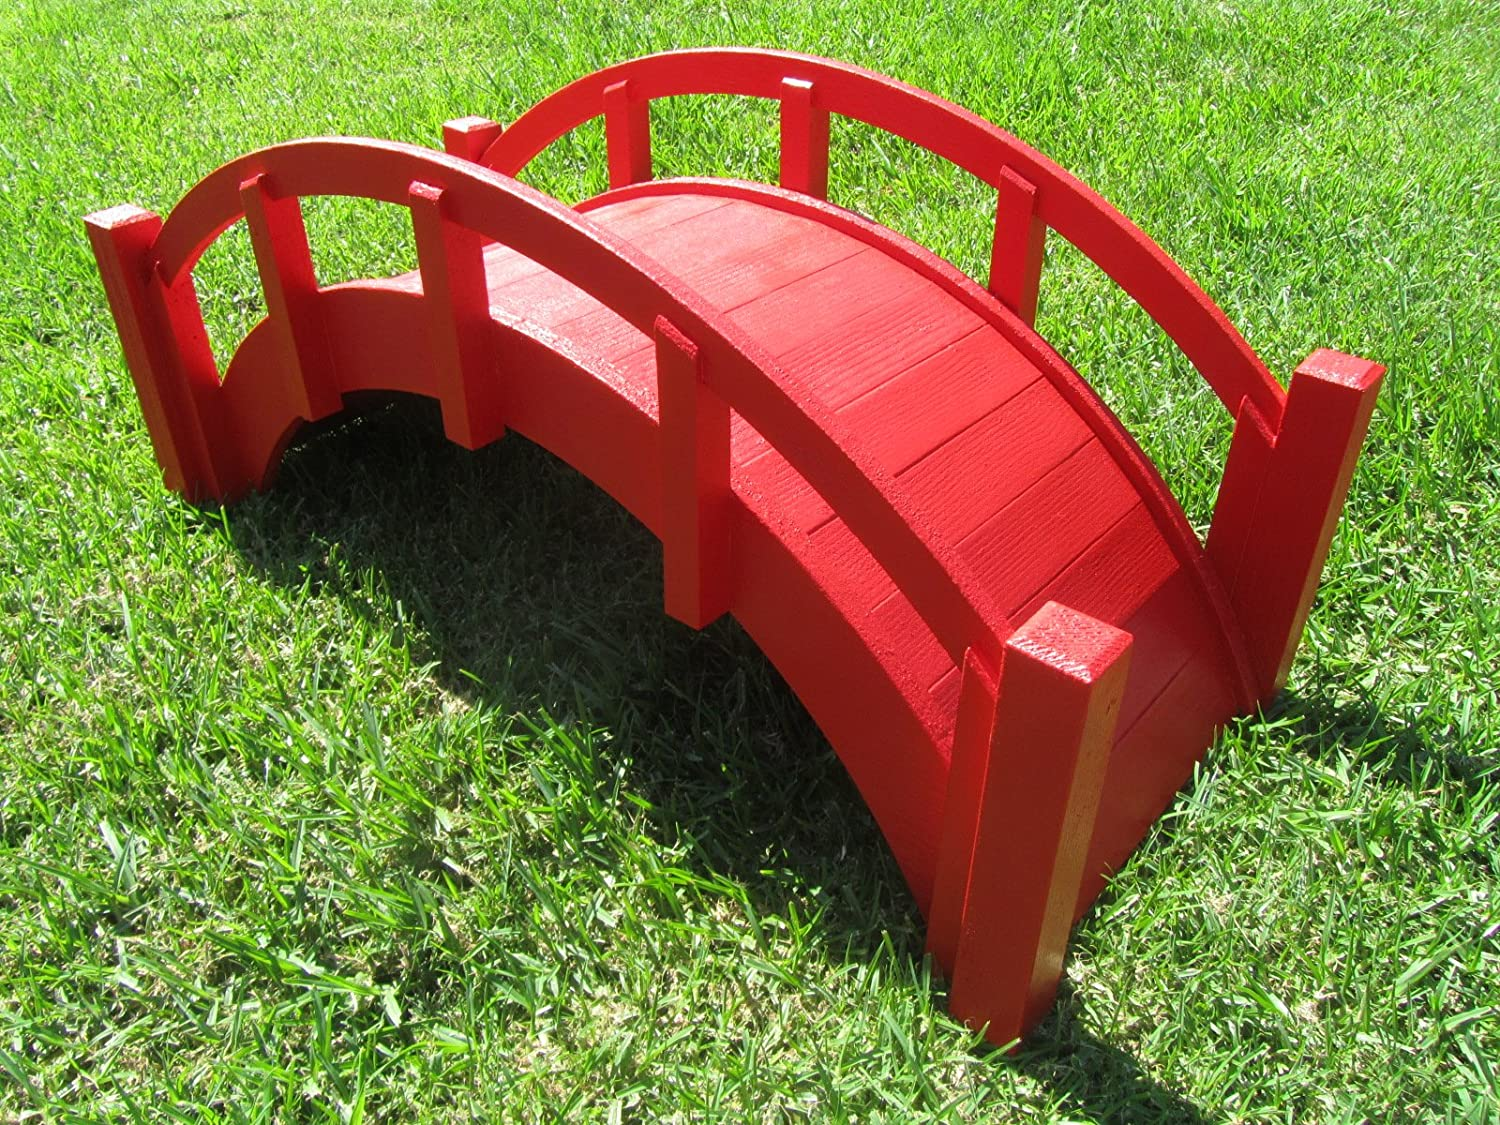 amazoncom samsgazebos miniature japanese wood garden bridge red assembled 25 long x 11 tall x 11 12 wide made in usa decorative red oriental